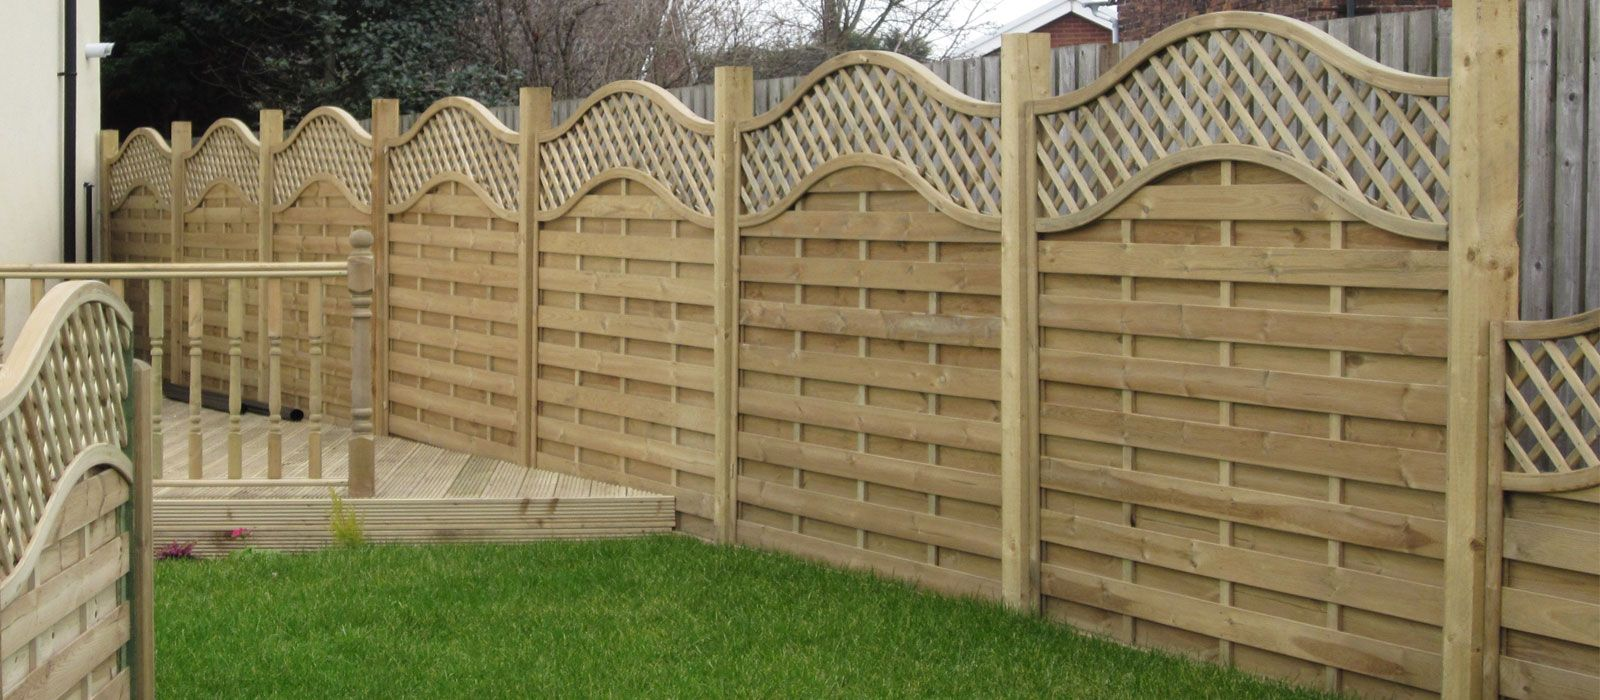 Benefits Of Having A Boundary Fence Gardening Pinterest